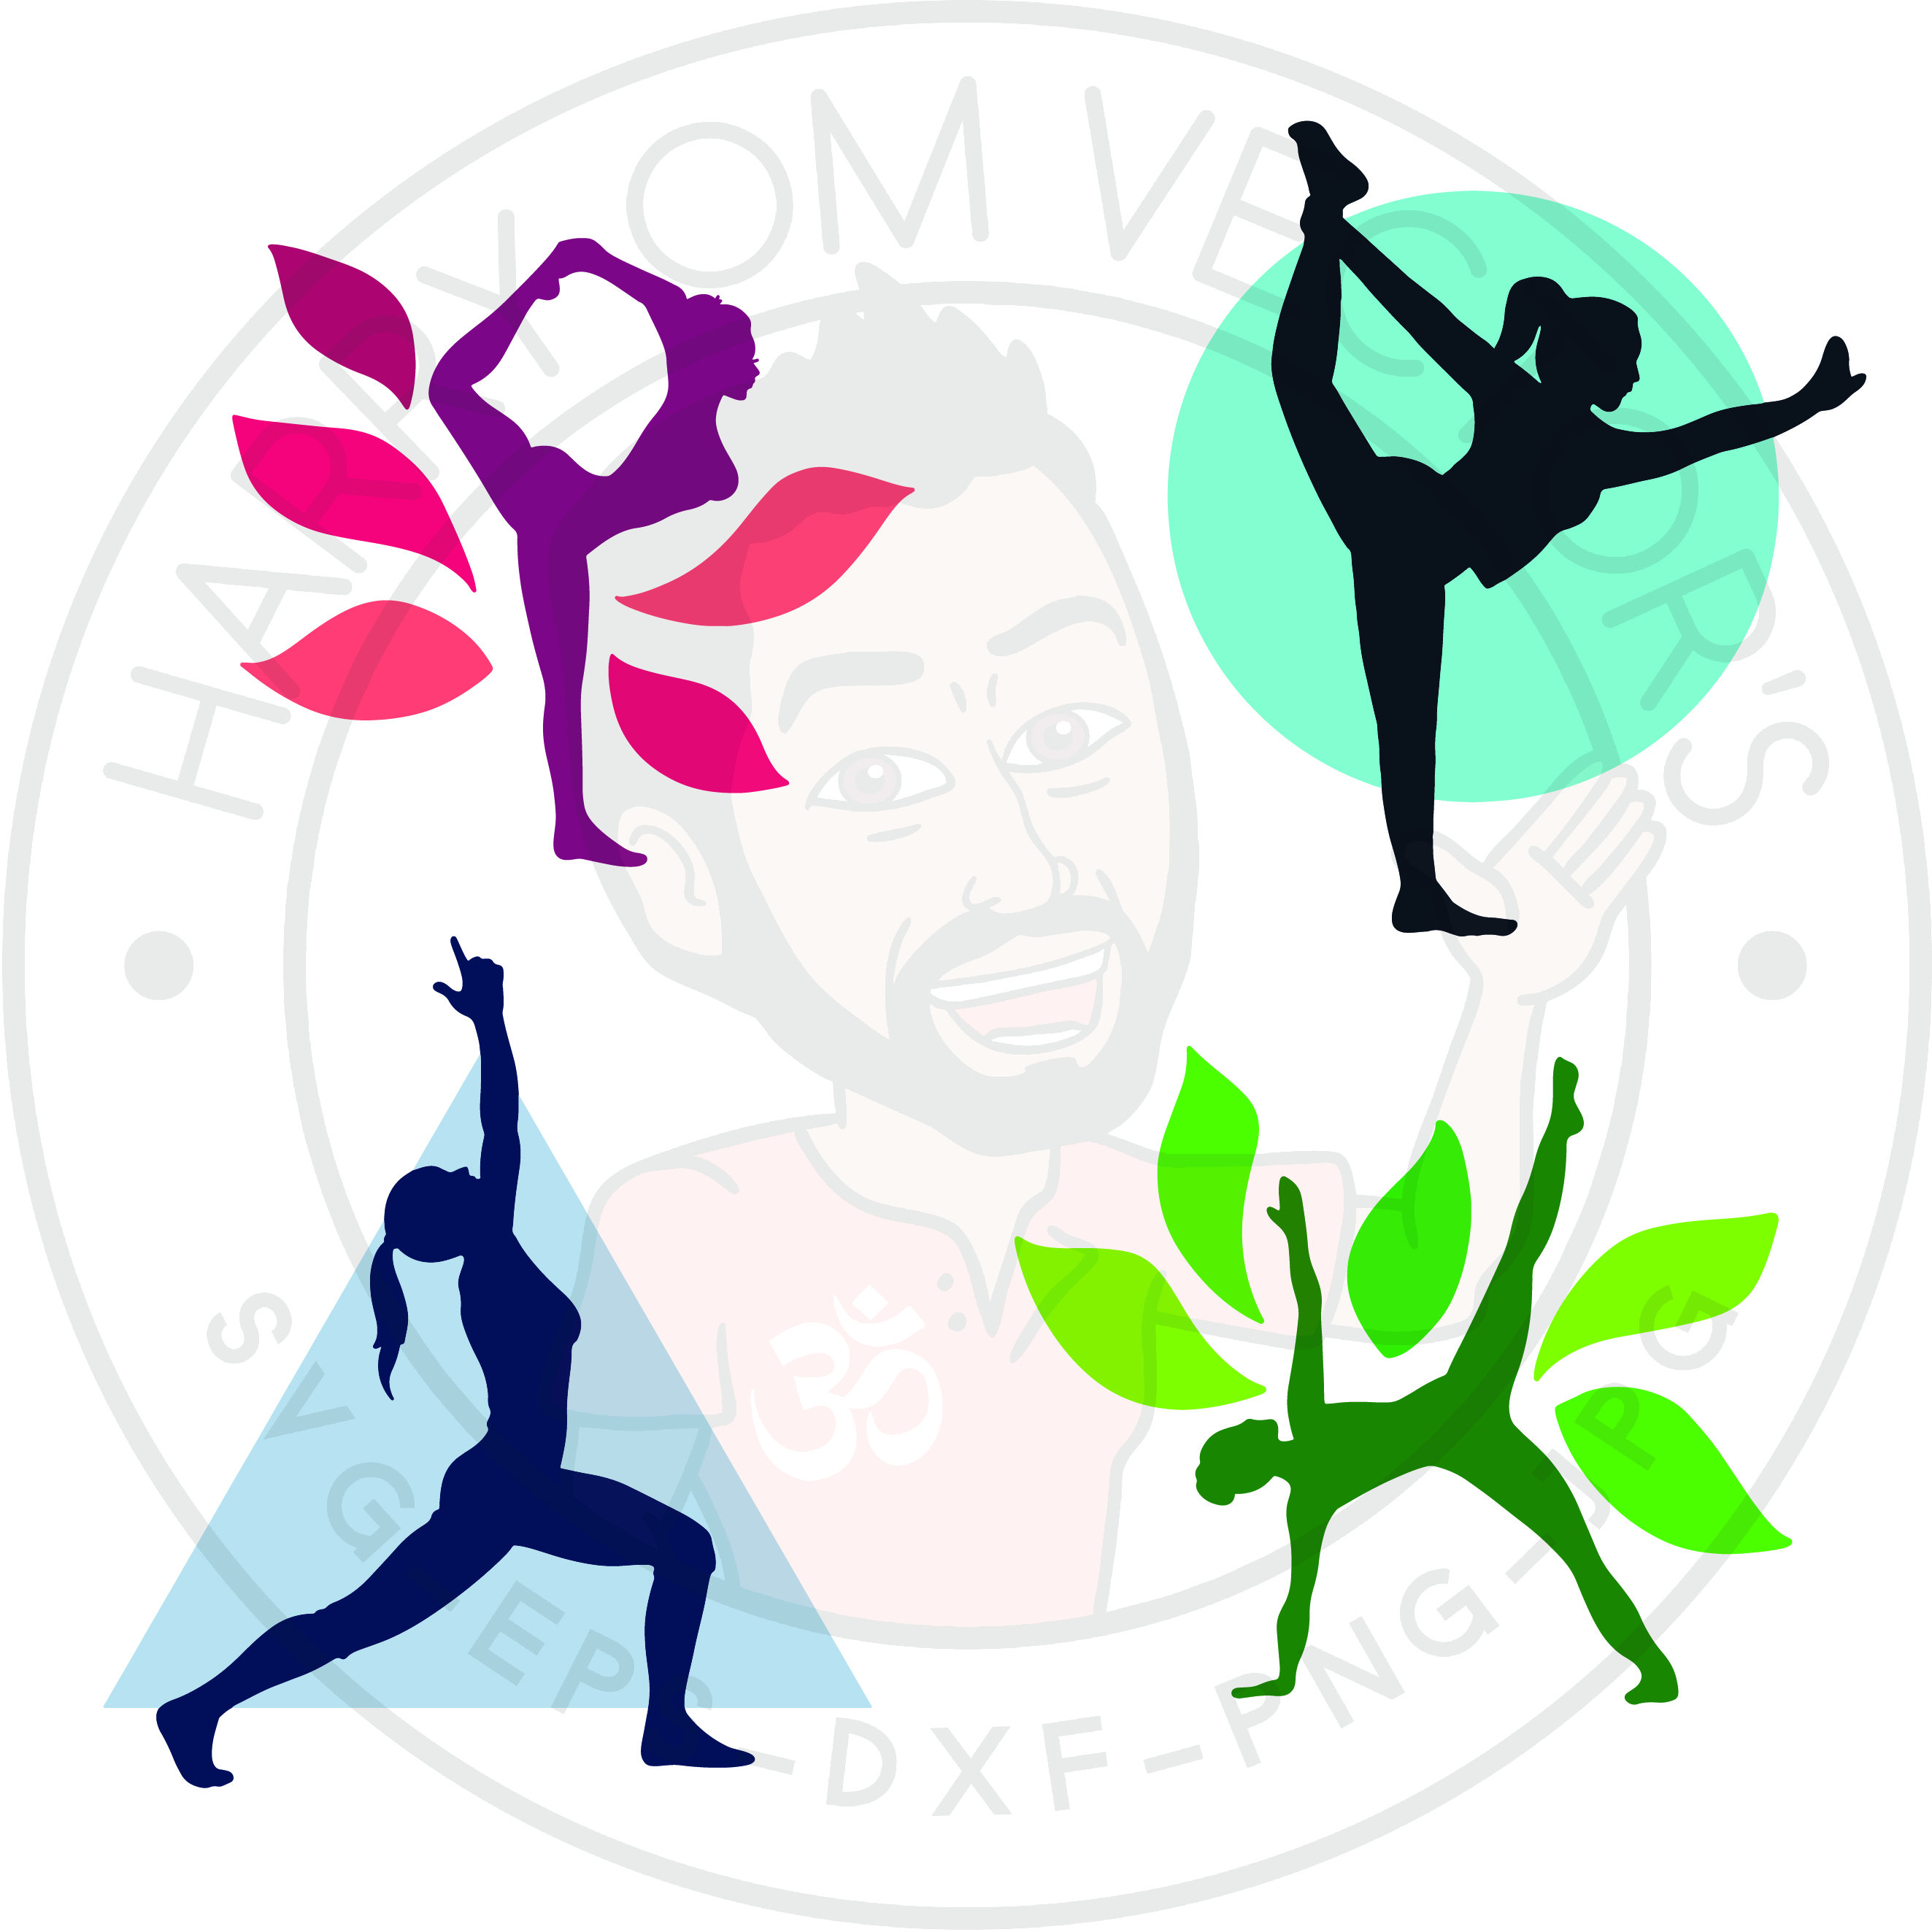 2647x2647 Standing Yoga Poses Vectors, Svg Dxf For Silhouette Cameo